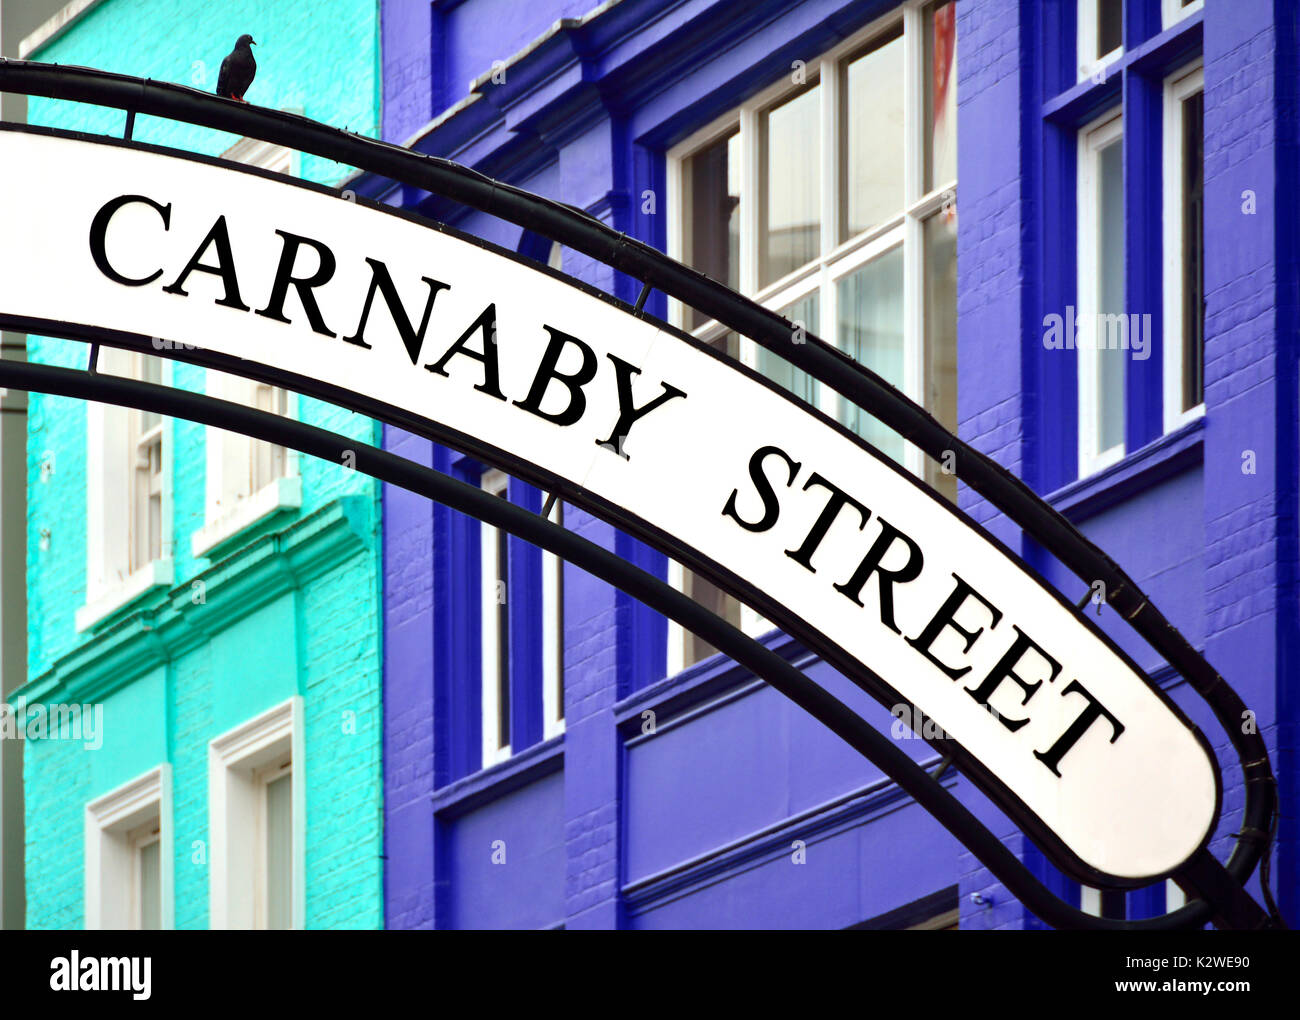 London, England, UK. Carnaby Street sign, with pigeon - Stock Image